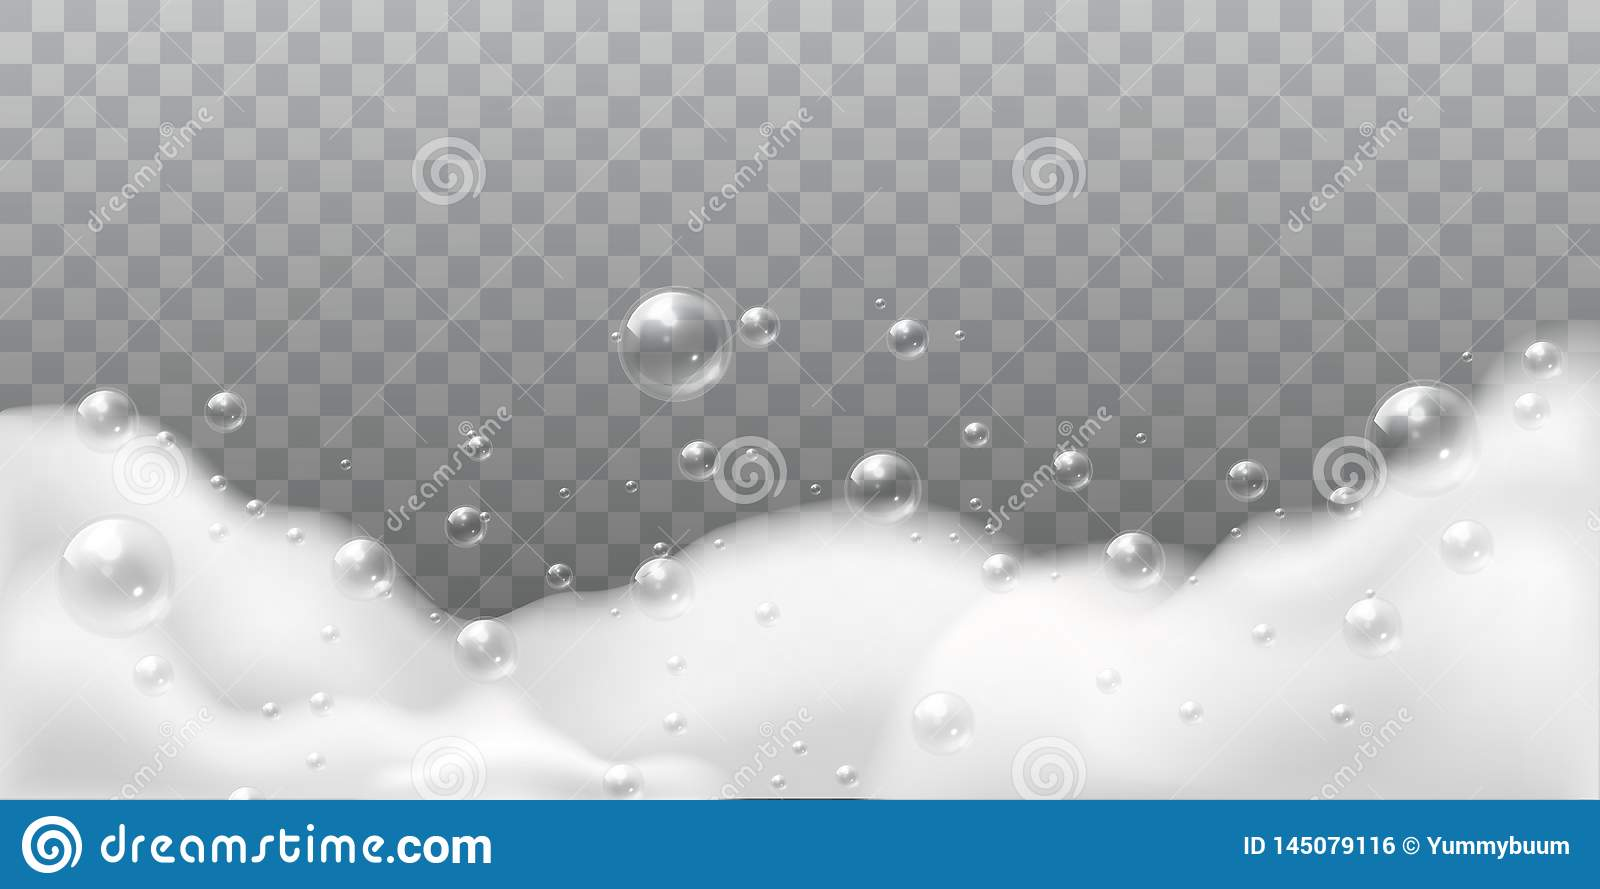 Soap foam. White bubbles of bath or laundry. Shampoo soap clean shiny bubbling. Washing hygiene detergent isolated